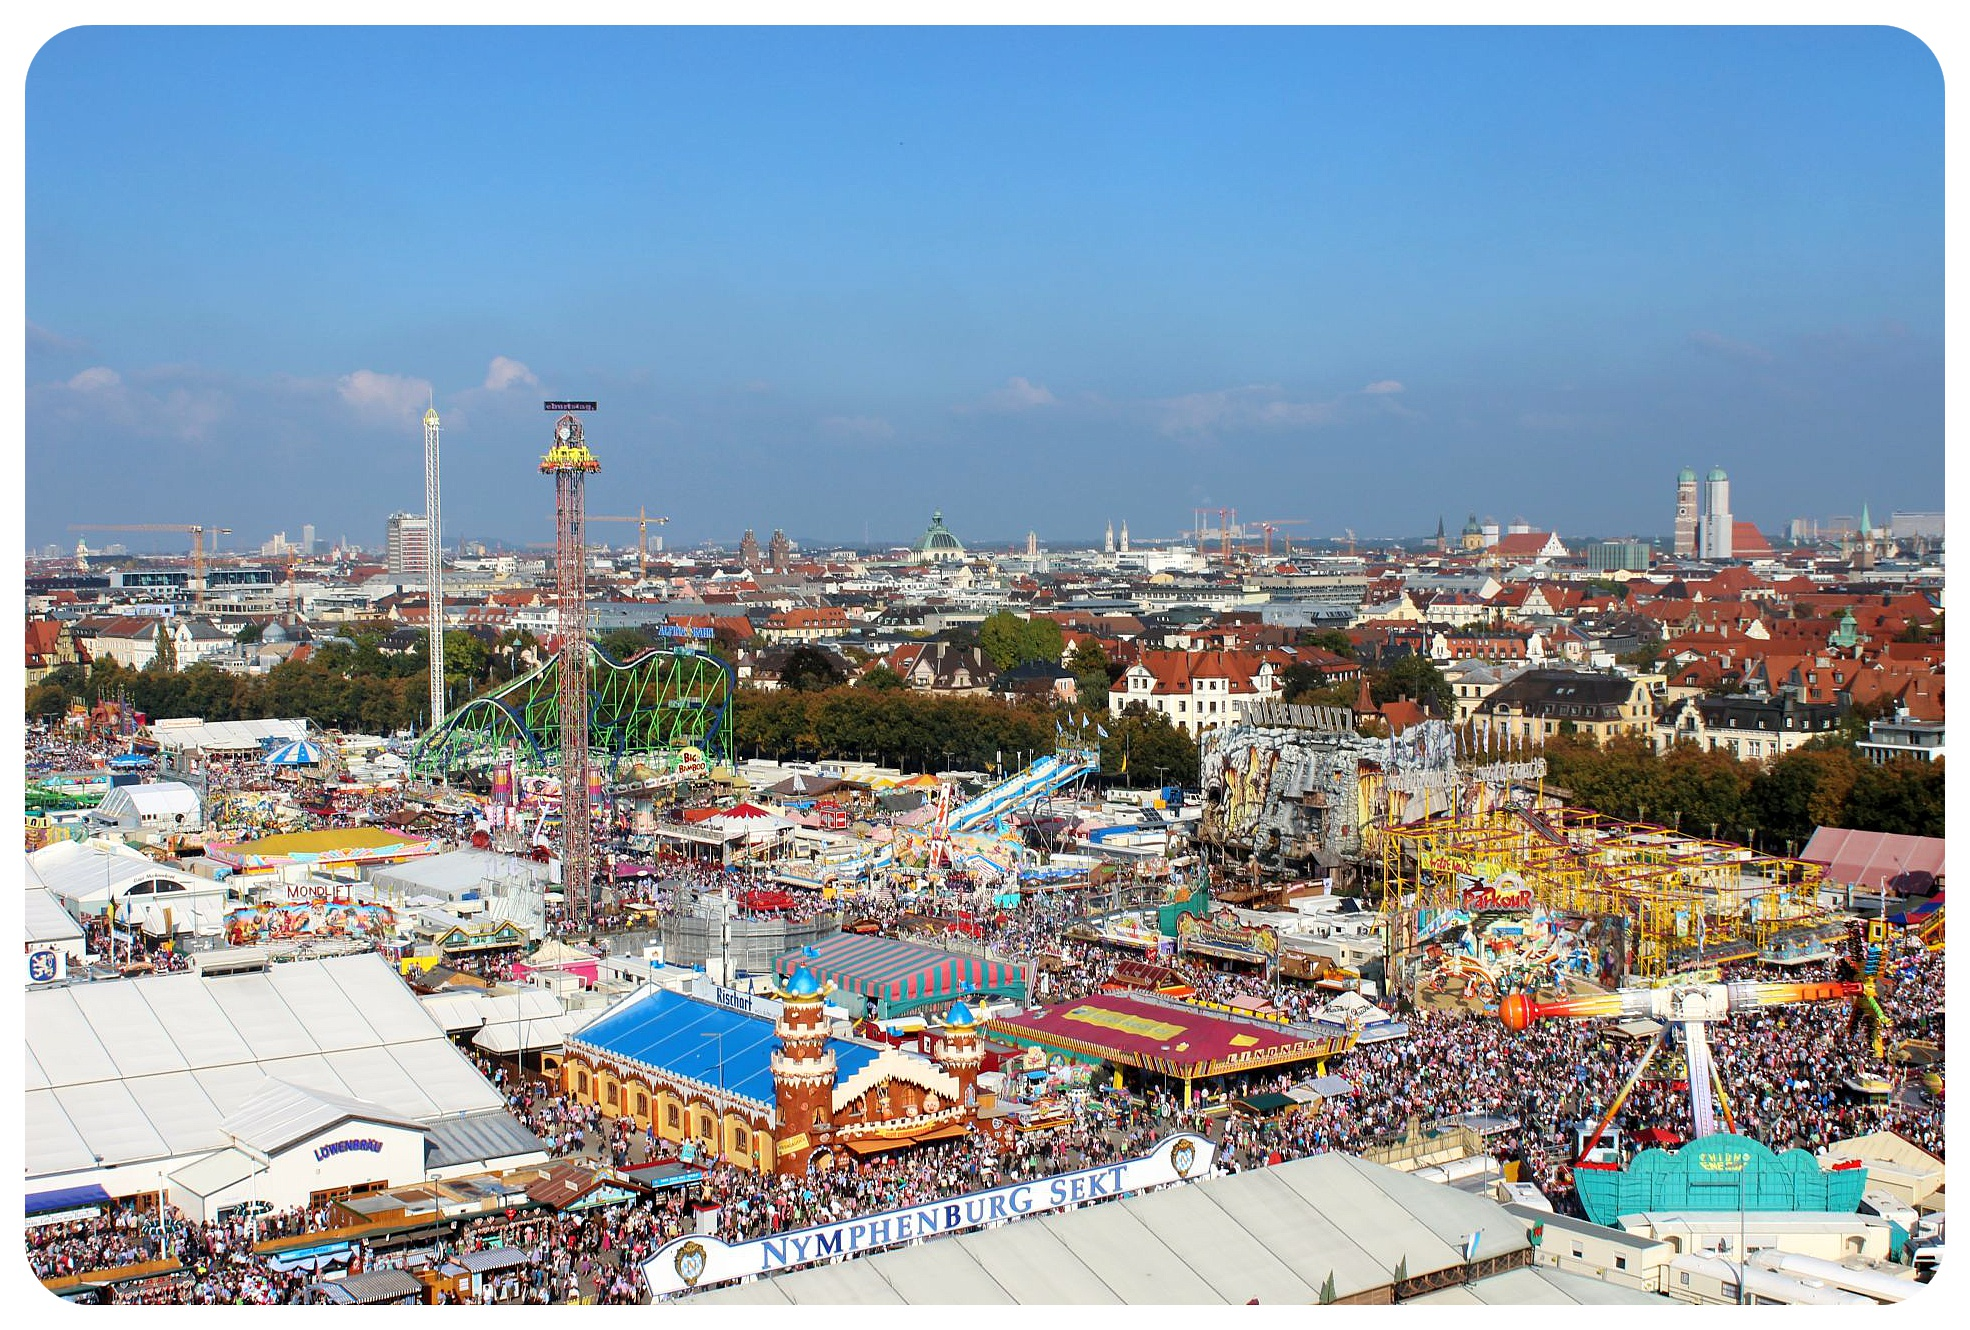 oktoberfest 2014 rides and crowds